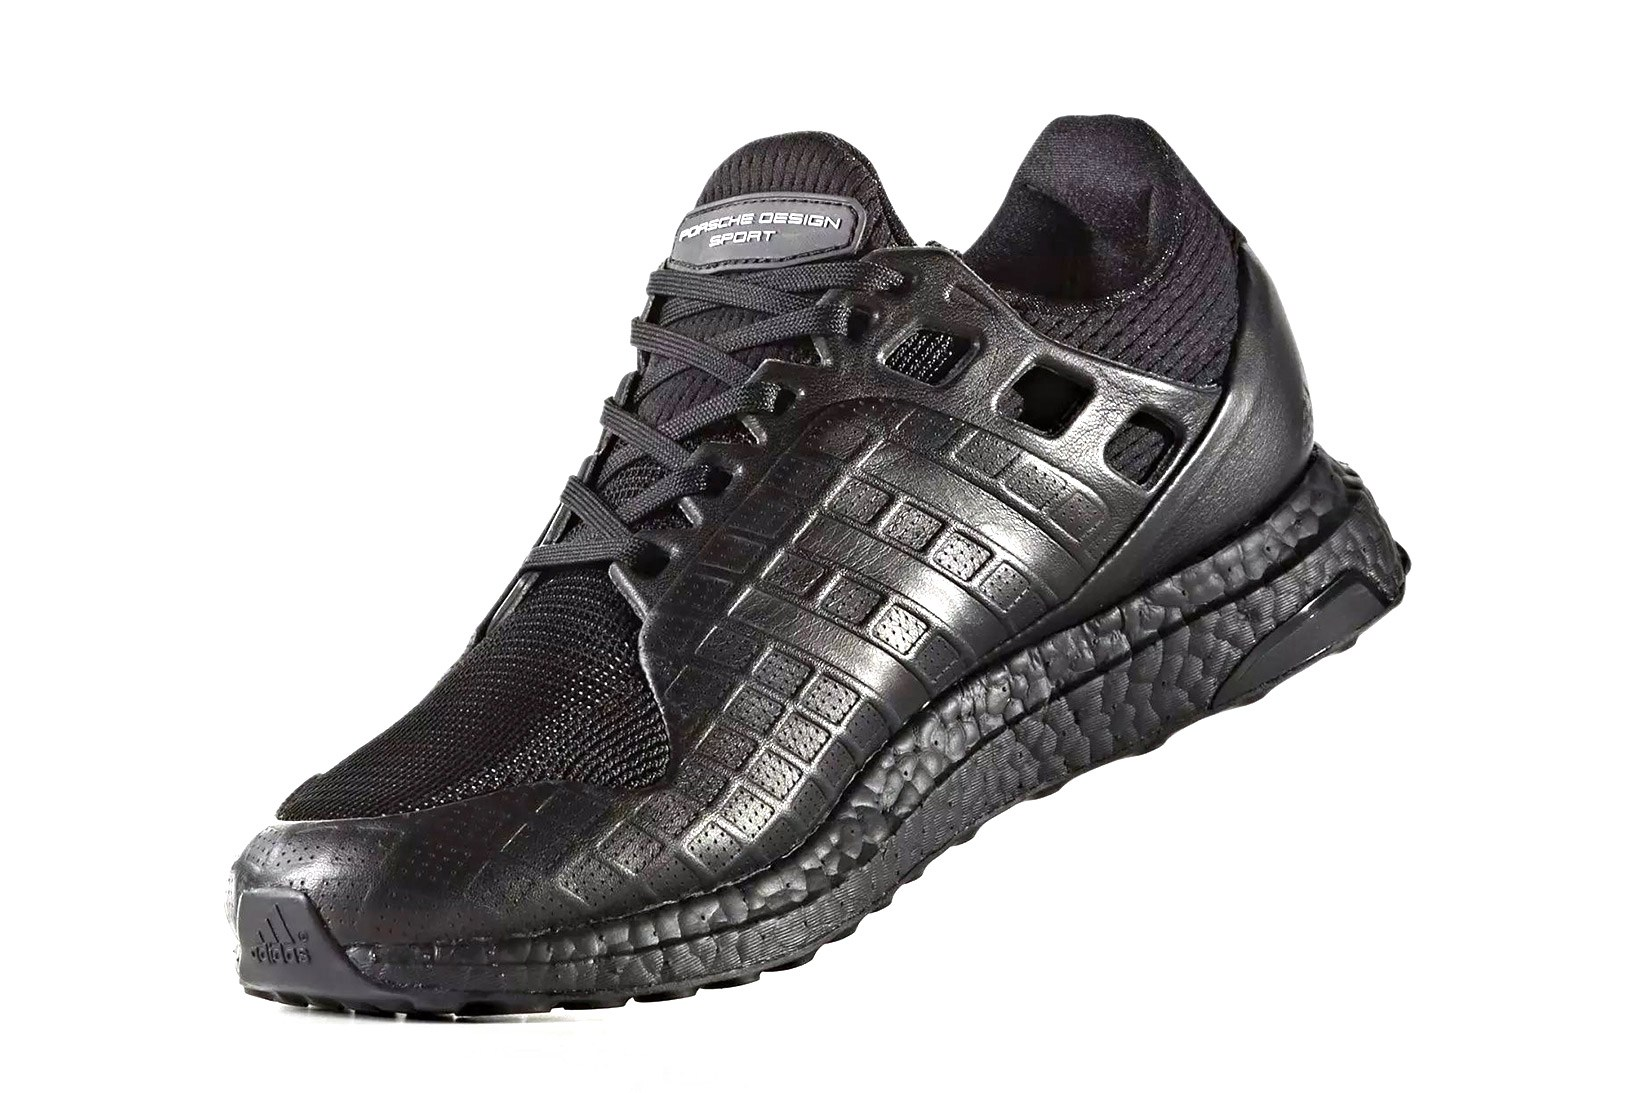 promo code for adidas porsche design triple sort y3 cd376 e47b9